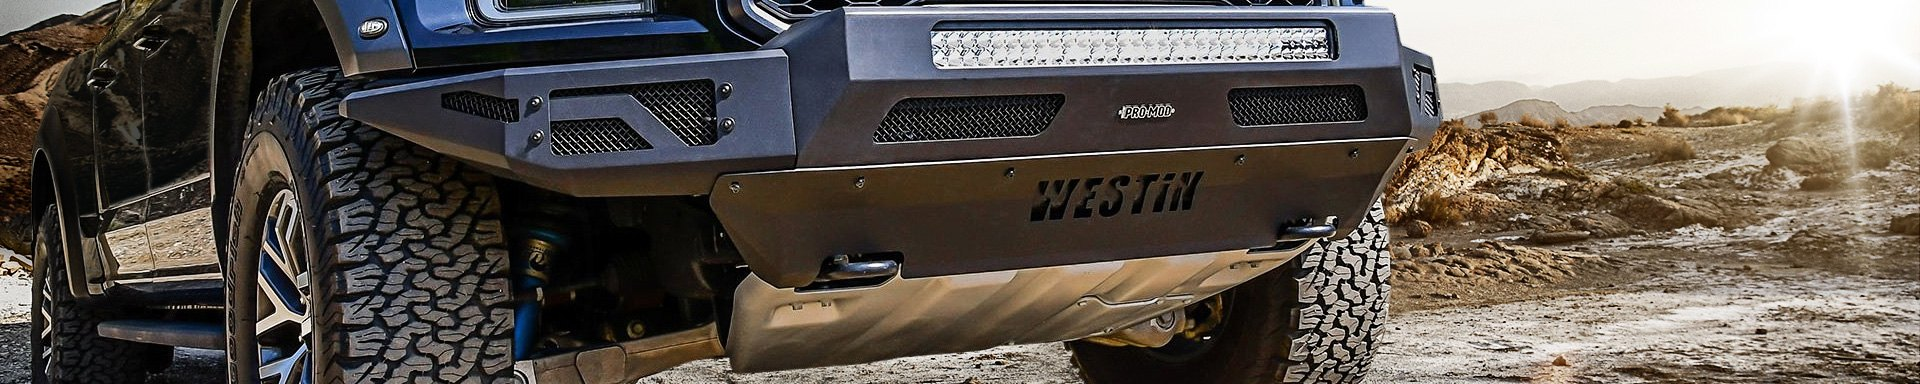 Westin Automotive™ | Grille Guards, Bull Bars, Running Boards ...